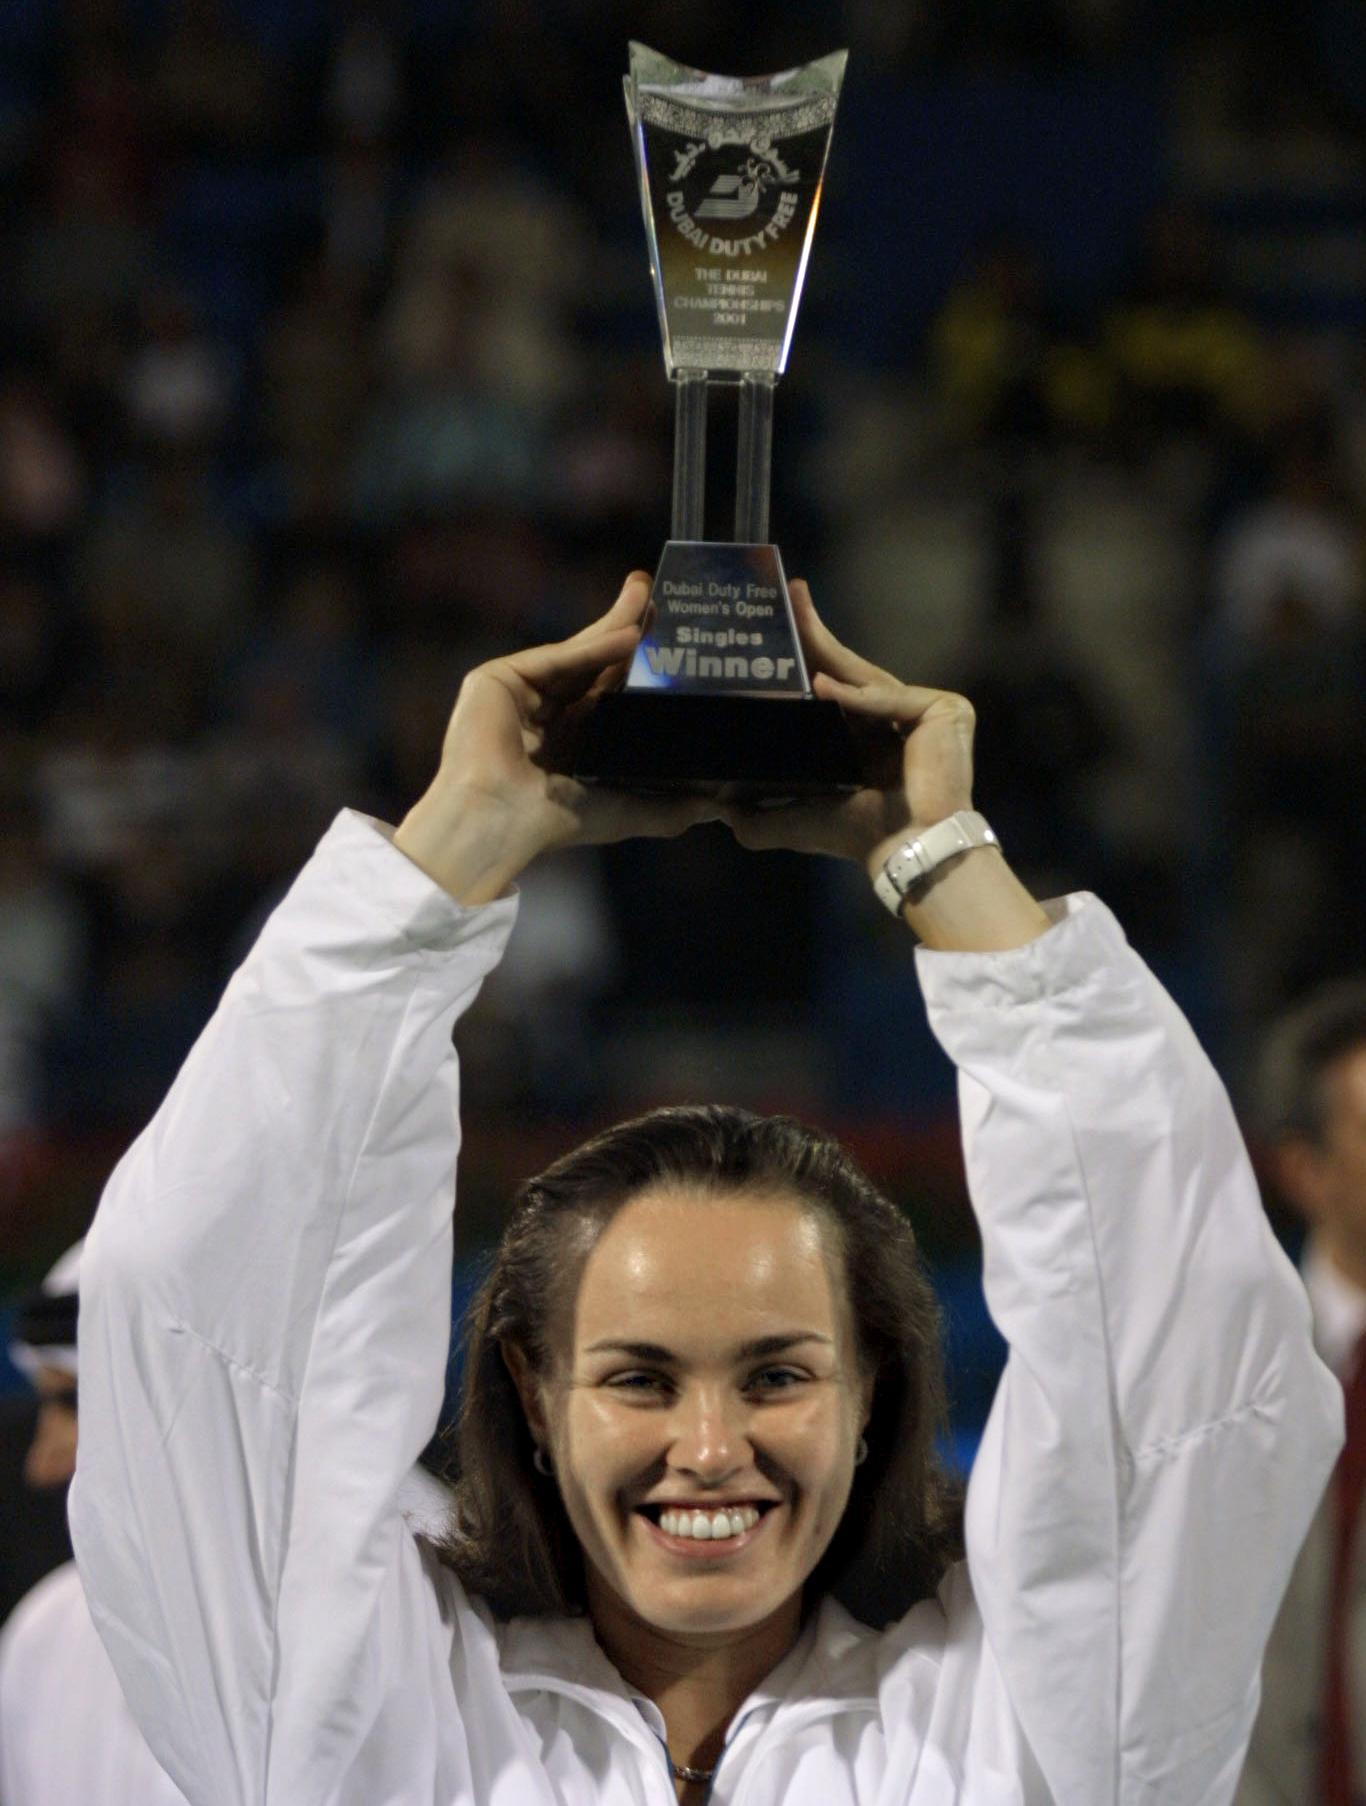 Martina Hingis won her ninth title of the year, defeating Monica Seles in three sets.